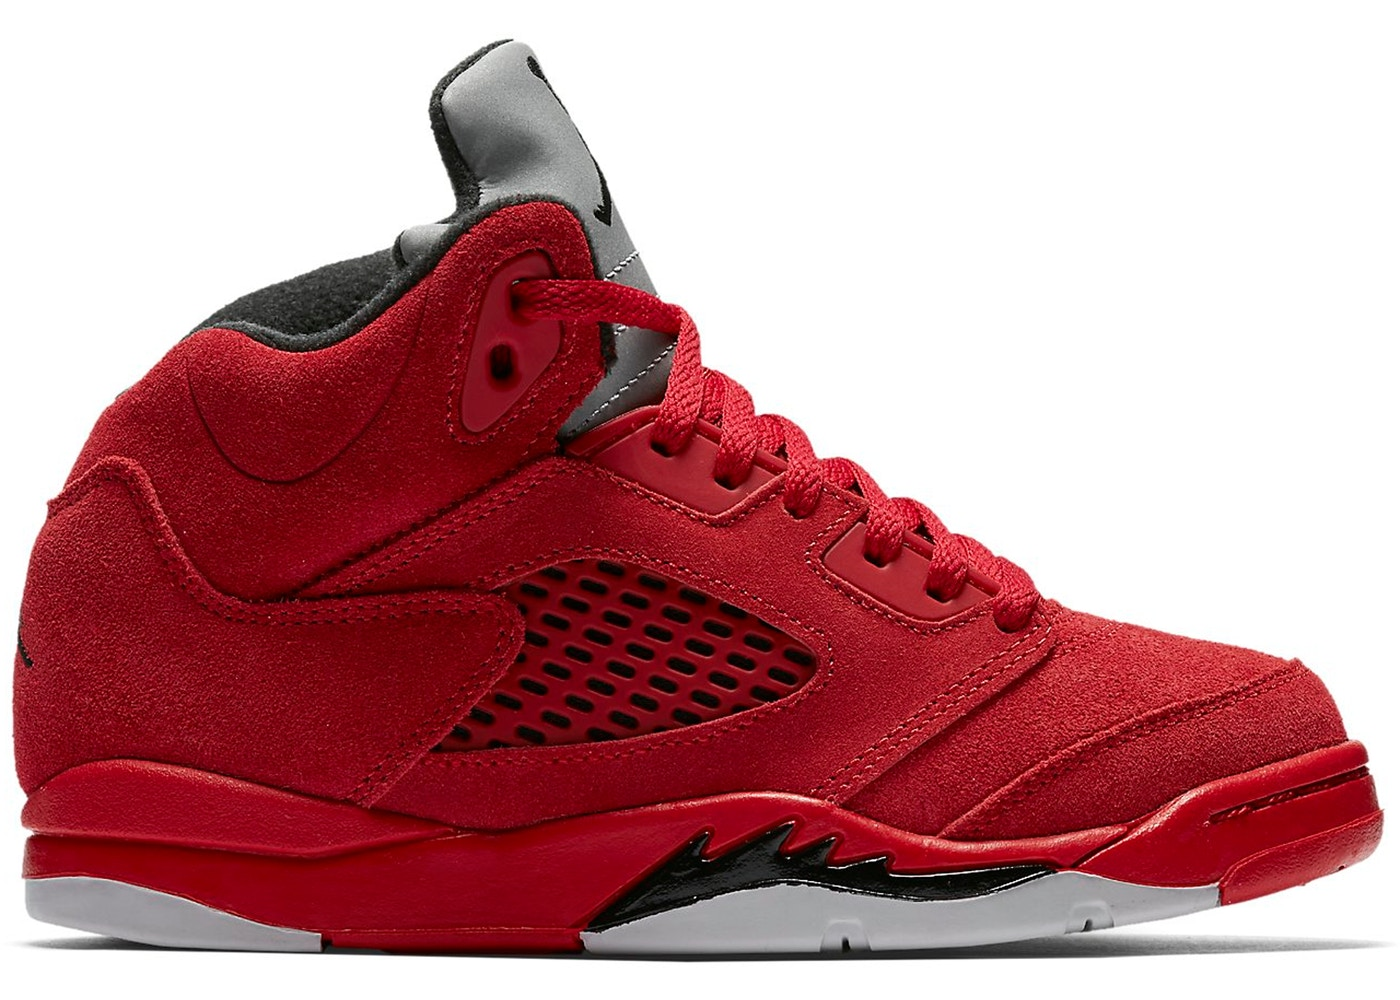 eeb165f6eb3 Jordan 5 Retro Red Suede (PS) - 440889-602